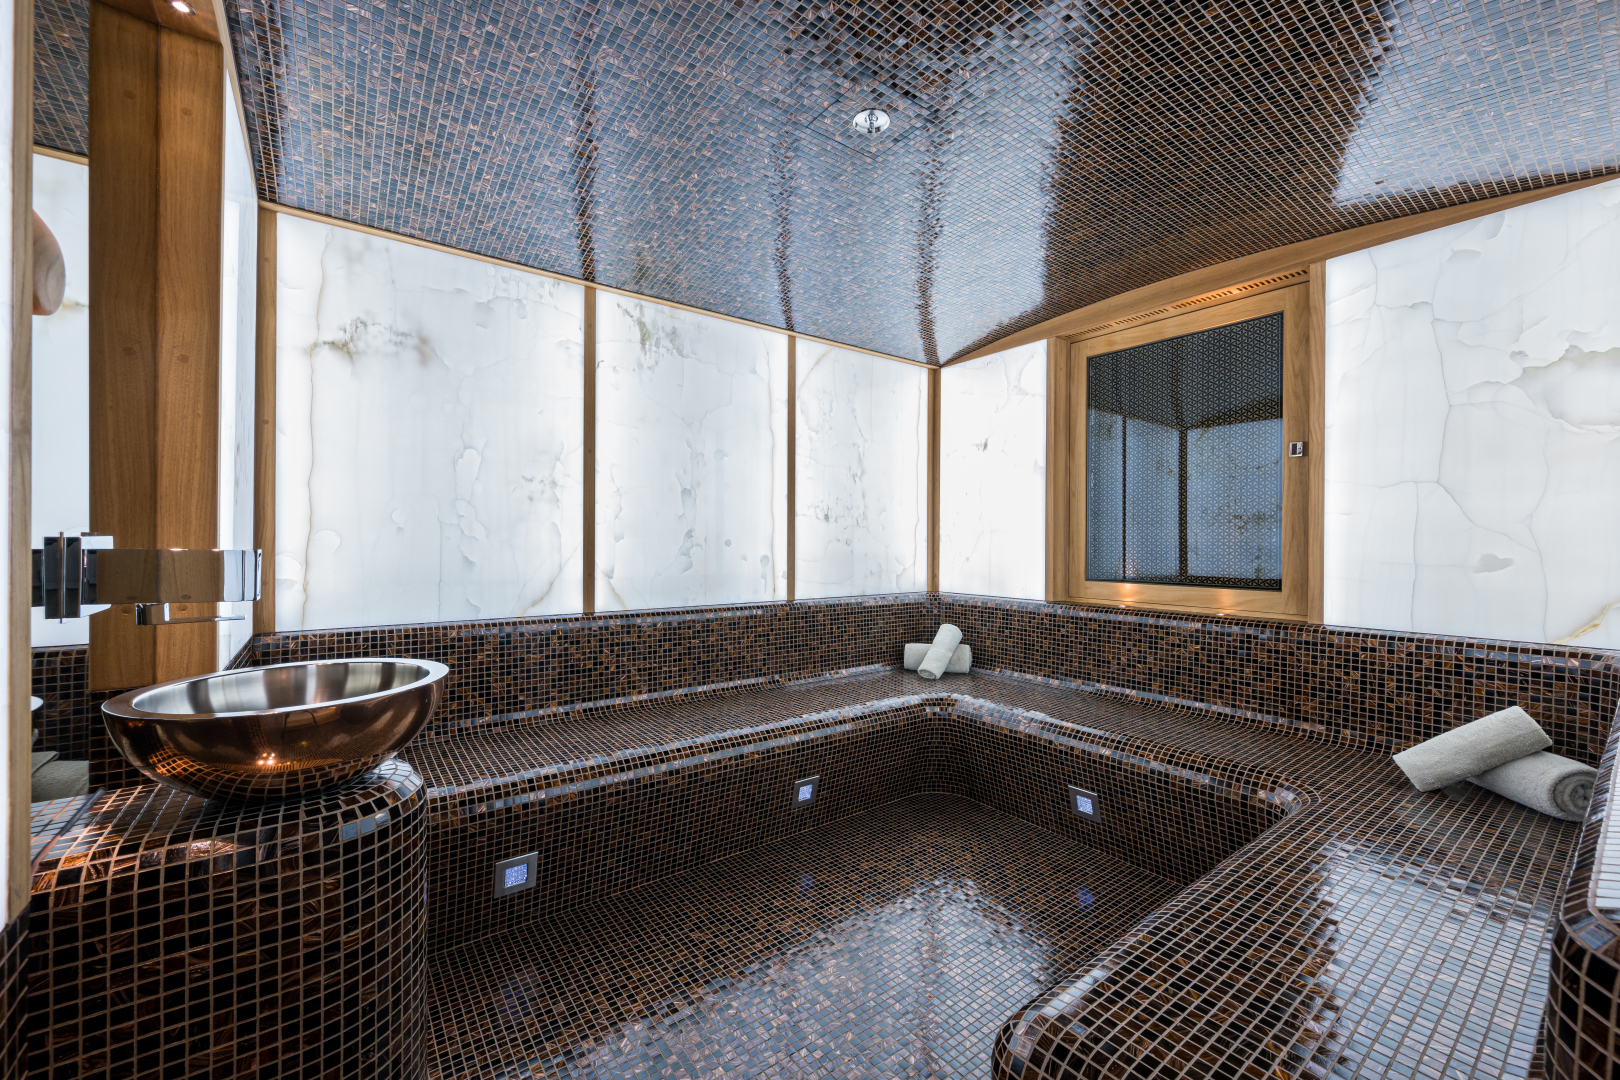 Turquoise 2012-QUANTUM OF SOLACE West Palm Beach-Florida-United States-Spa 10-Person Hamman/Steam Room with Backlit Quartz-1572103 | Thumbnail